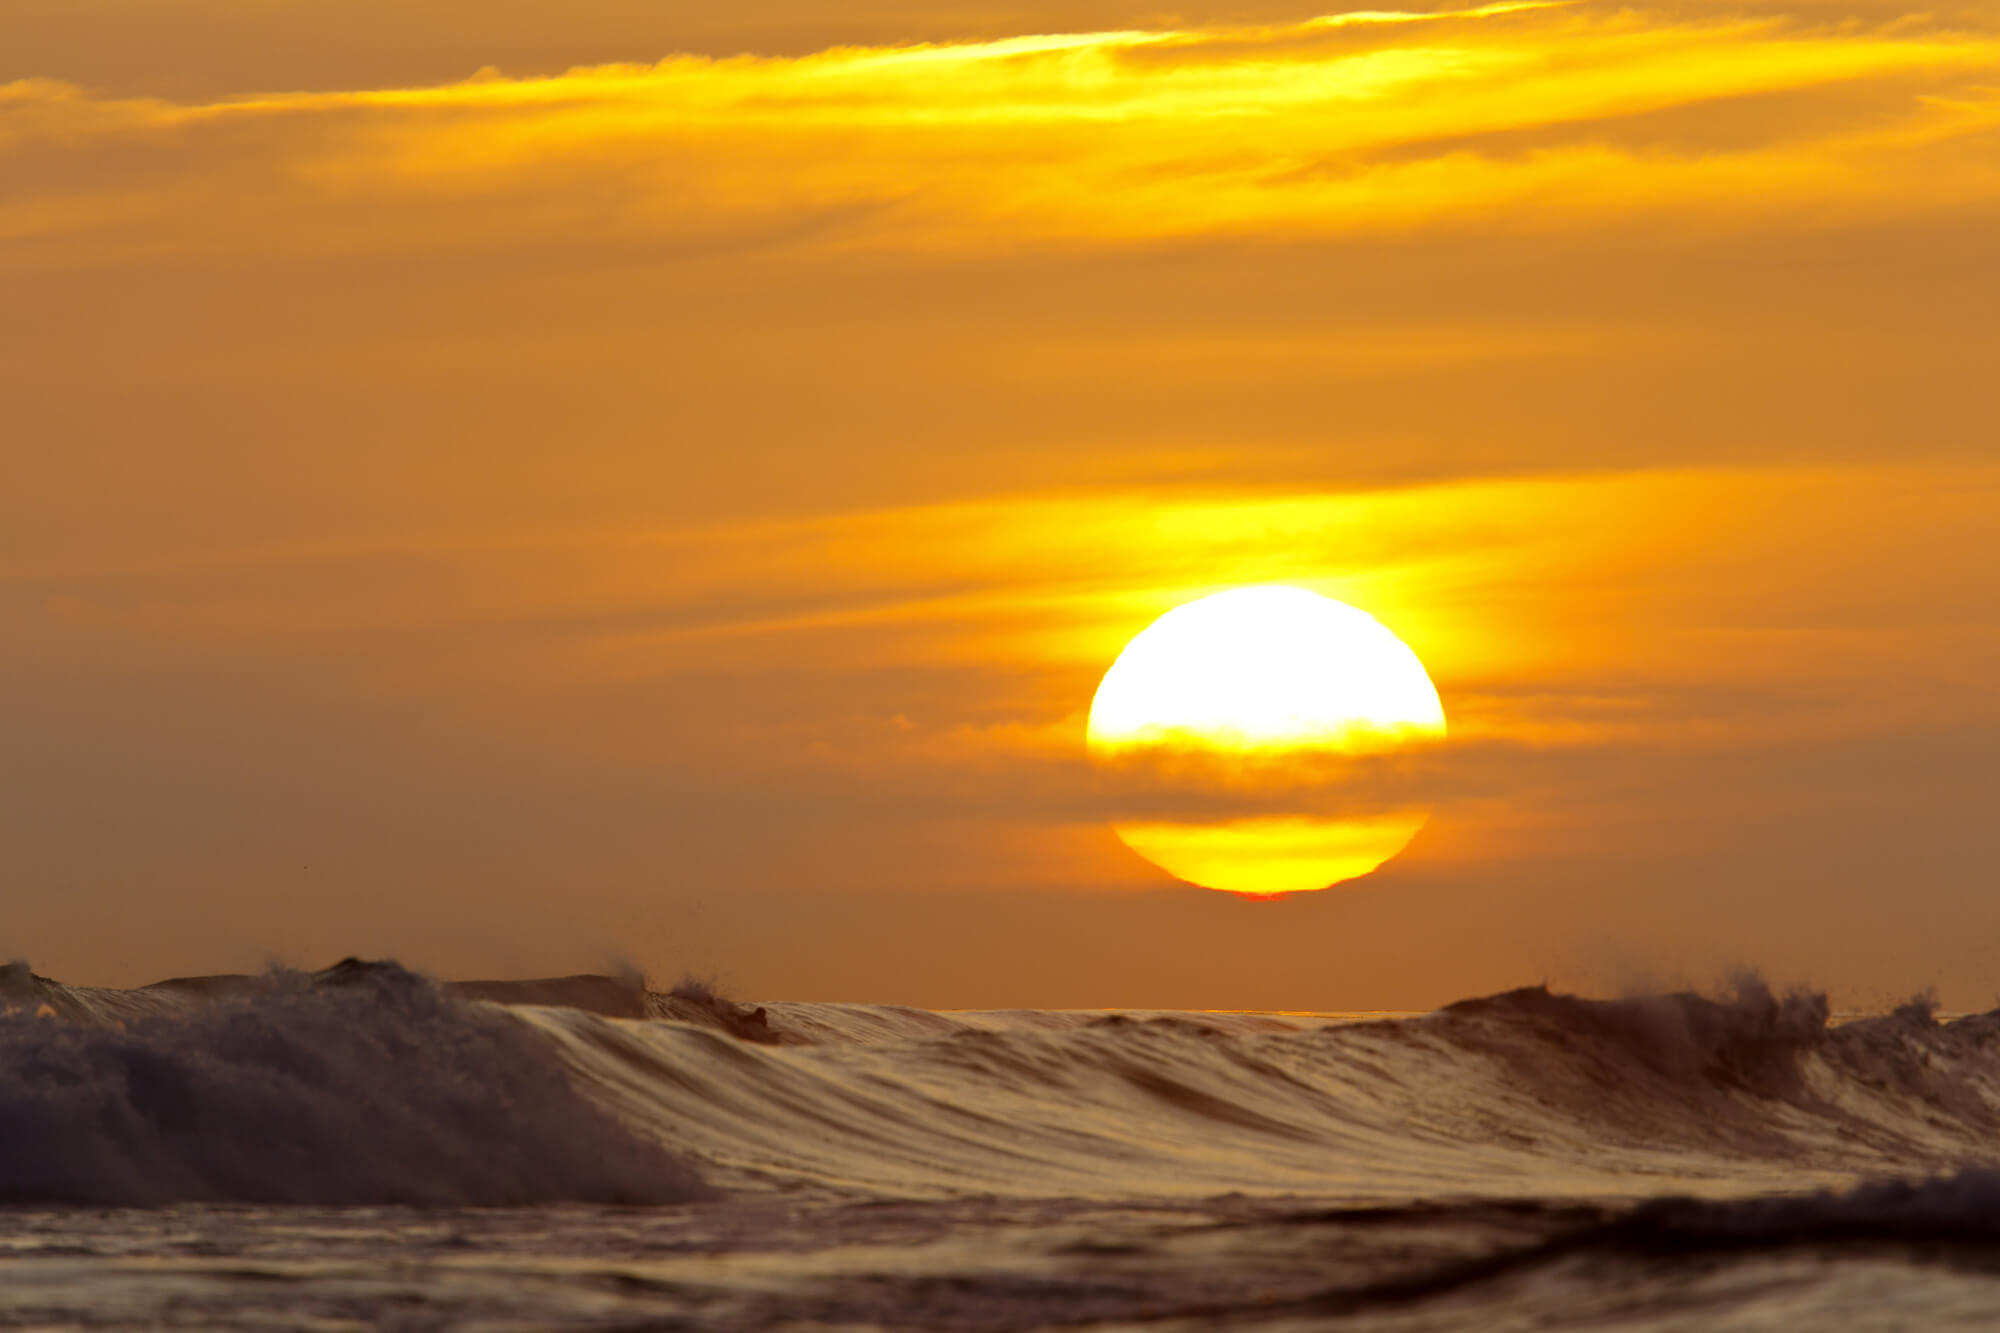 California san clemente dramatic sunset into the ocean wall california san clemente dramatic sunset into the ocean wall mural photo wallpaper amipublicfo Gallery